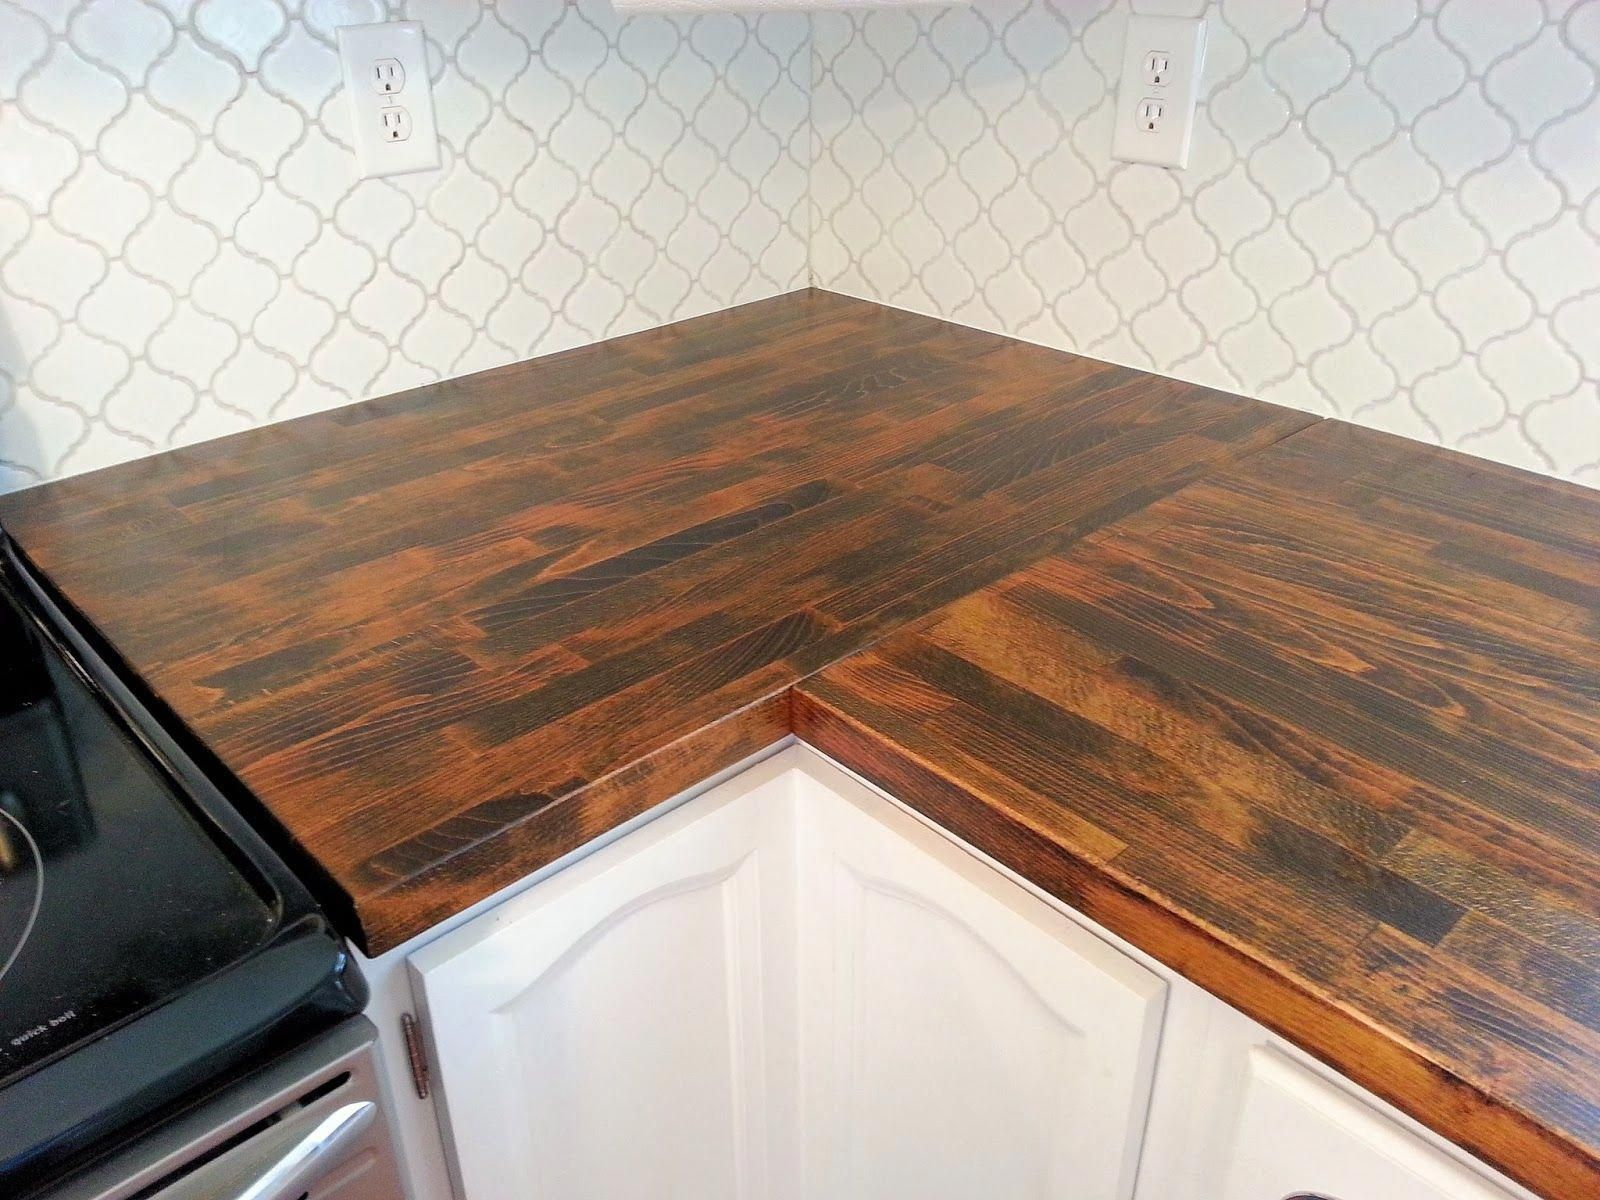 Gorgeous Butcher Block Countertops For Your Kitchen Remodel Tile